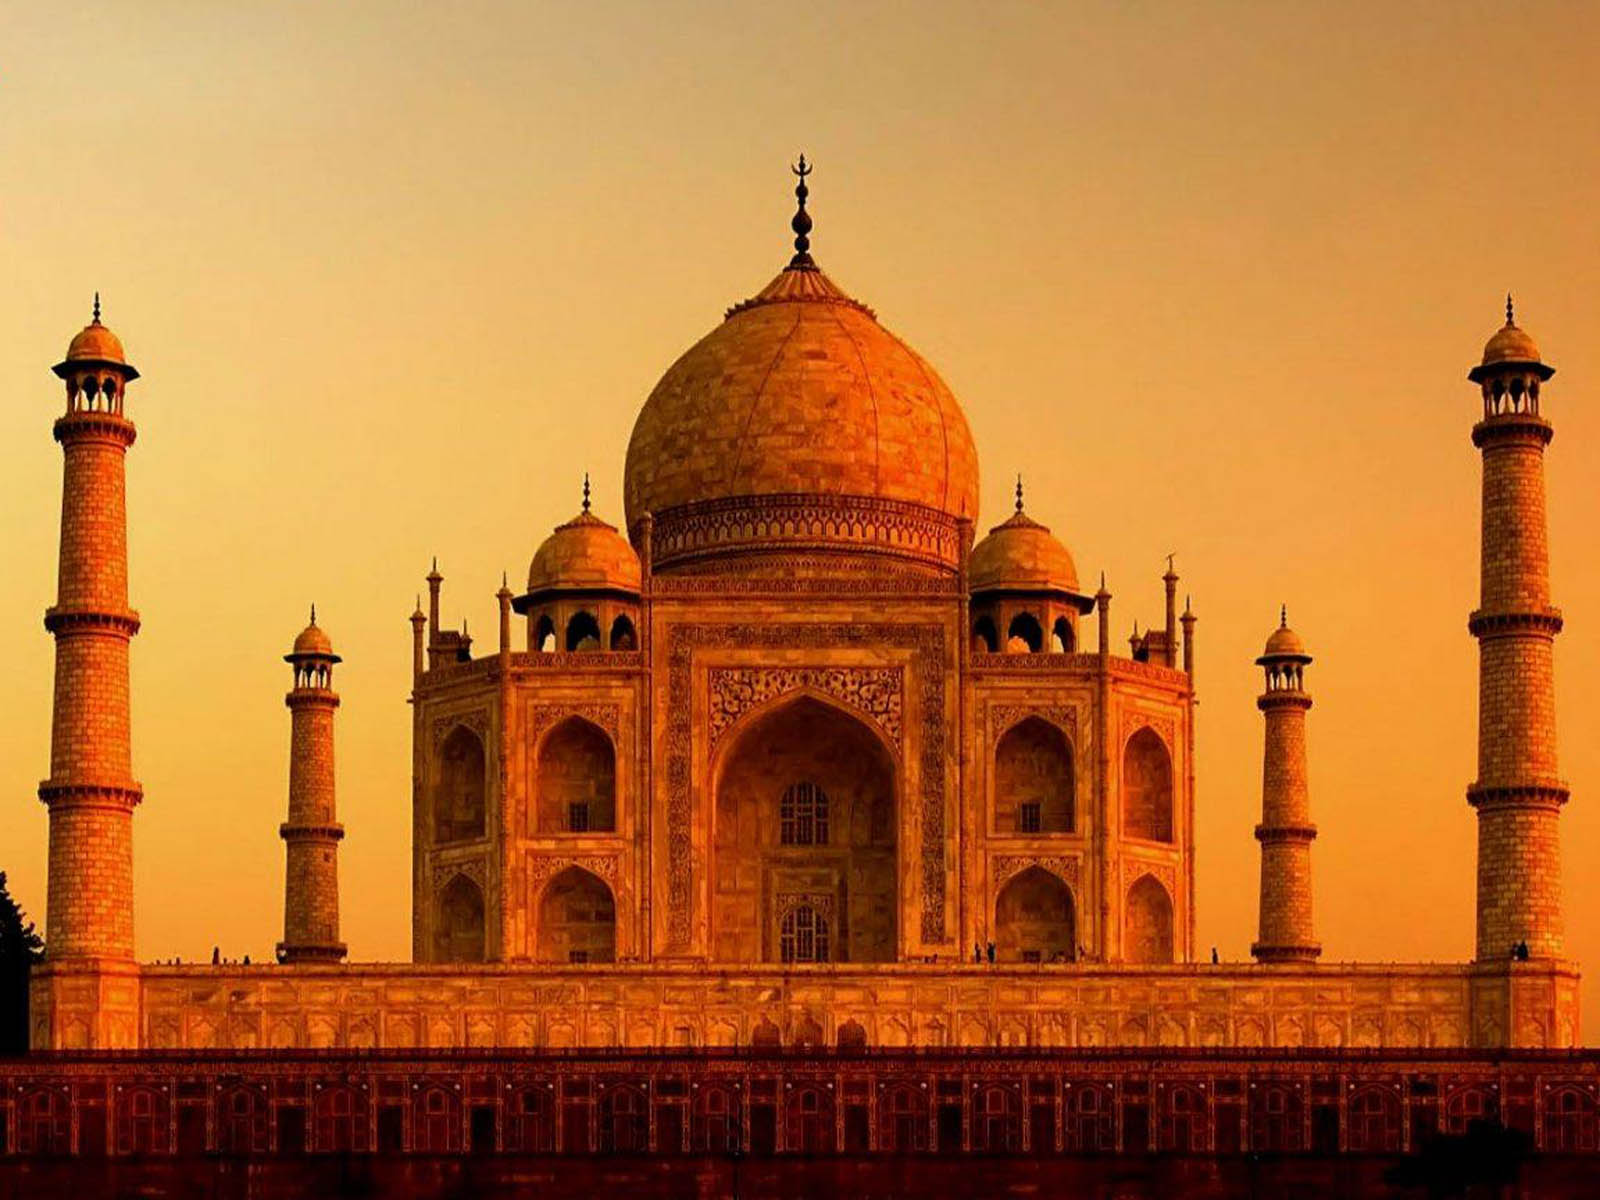 taj mahal full hd wallpaper free download